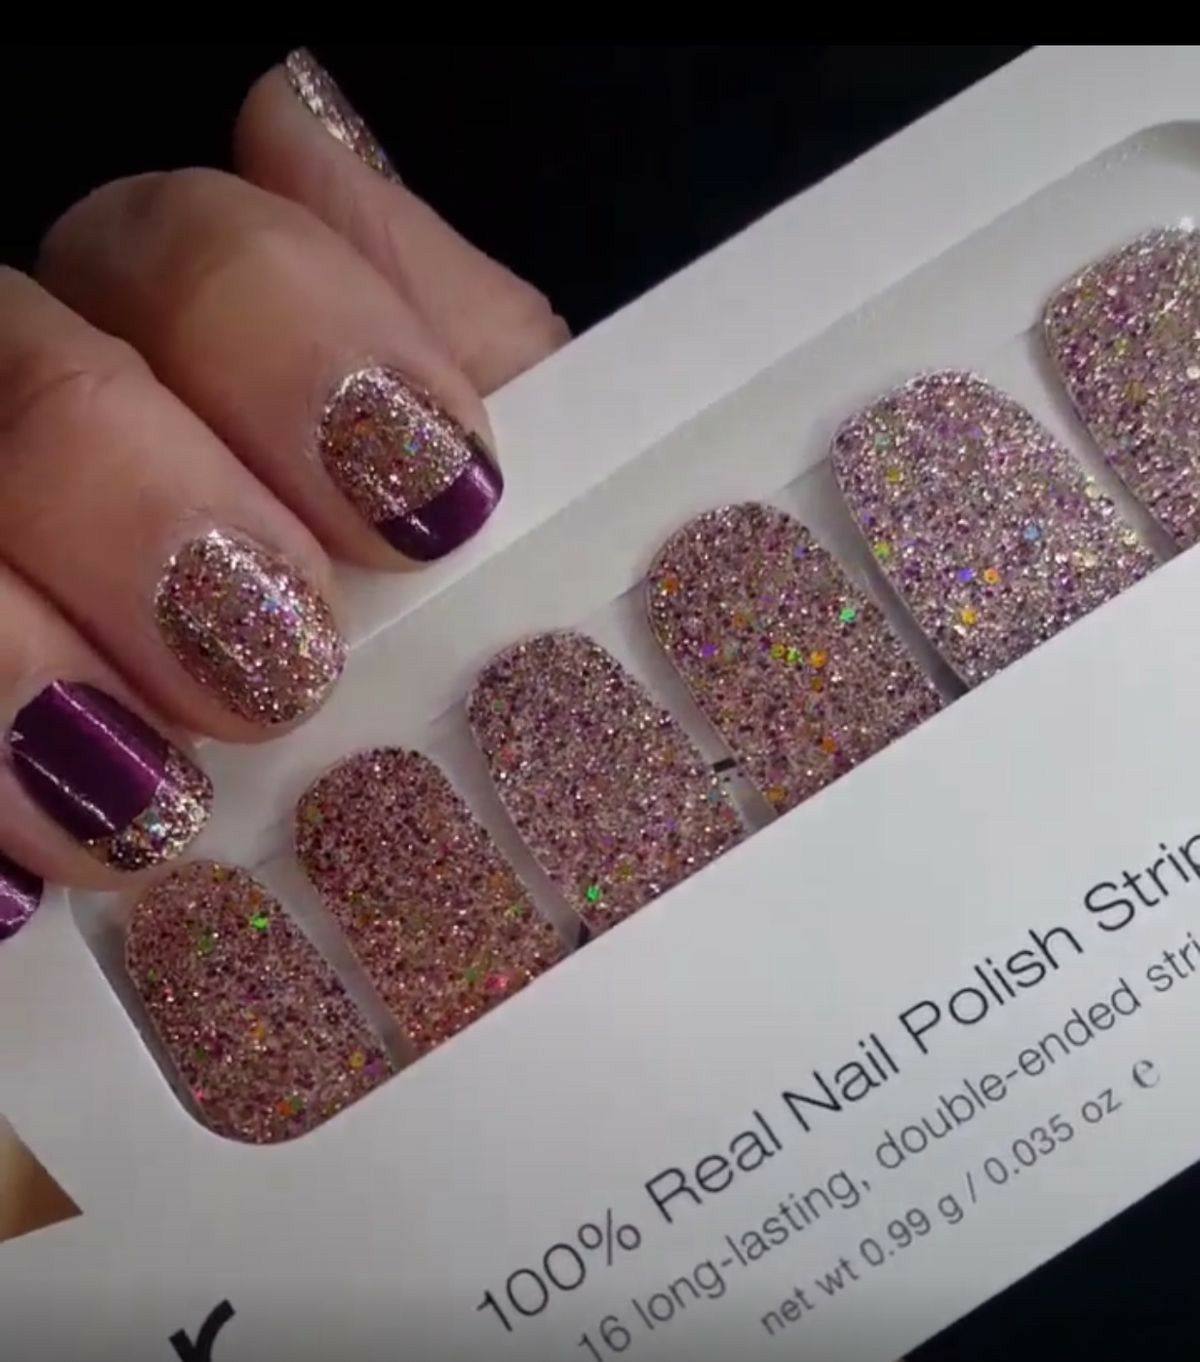 Colorstreet nails colorstreet nail polish strips  nail polish